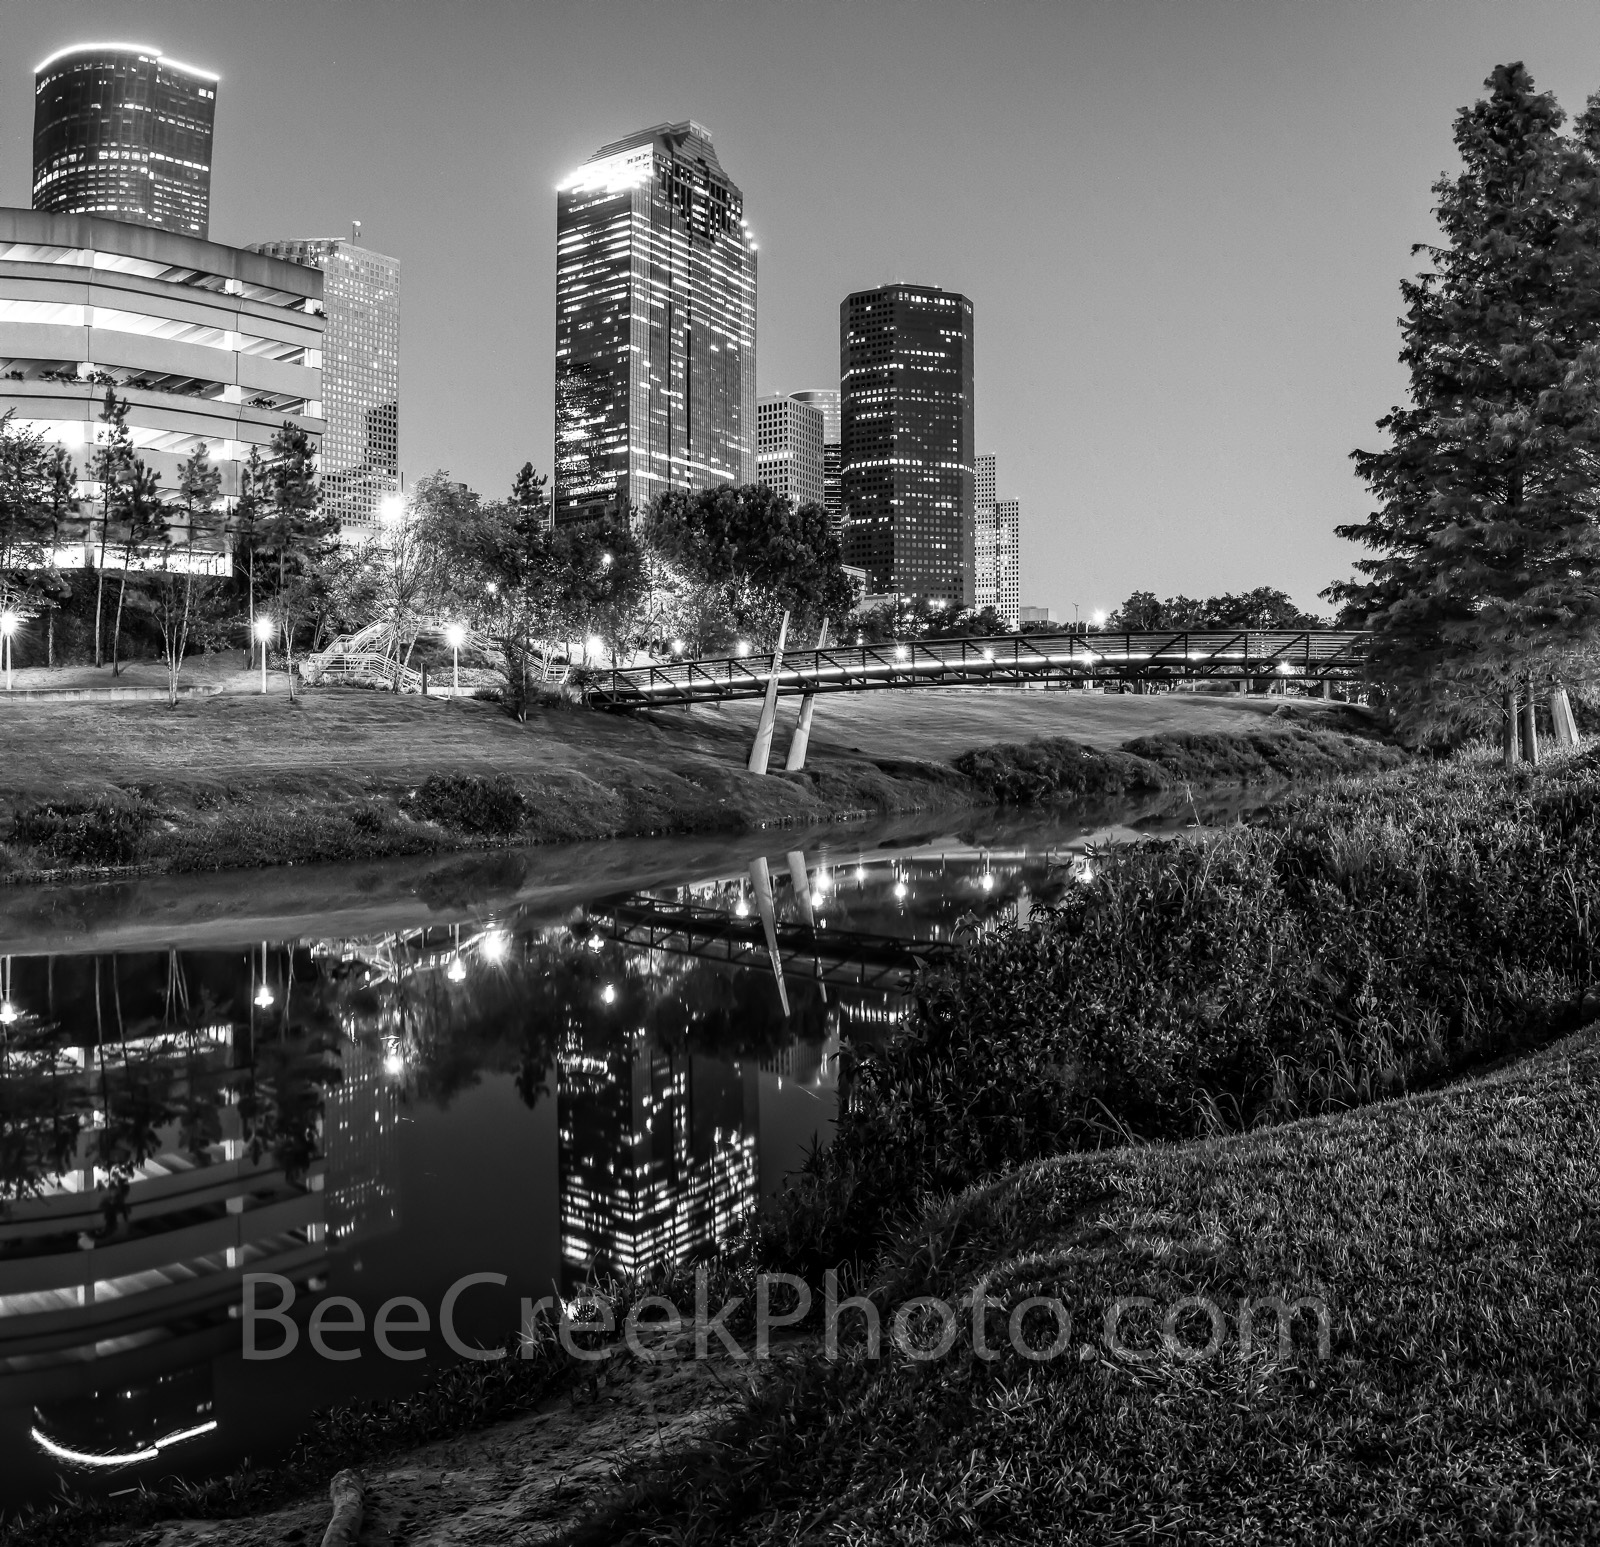 Houston, bagby to sabine, promenade, panorama, pano, bridge, downtown, skyline, twilight, blue hour, dusk, pedestrian bridges, panorama, pano, Wells Fargo, Heritage Plaza, america, cityscapes, buffalo, photo